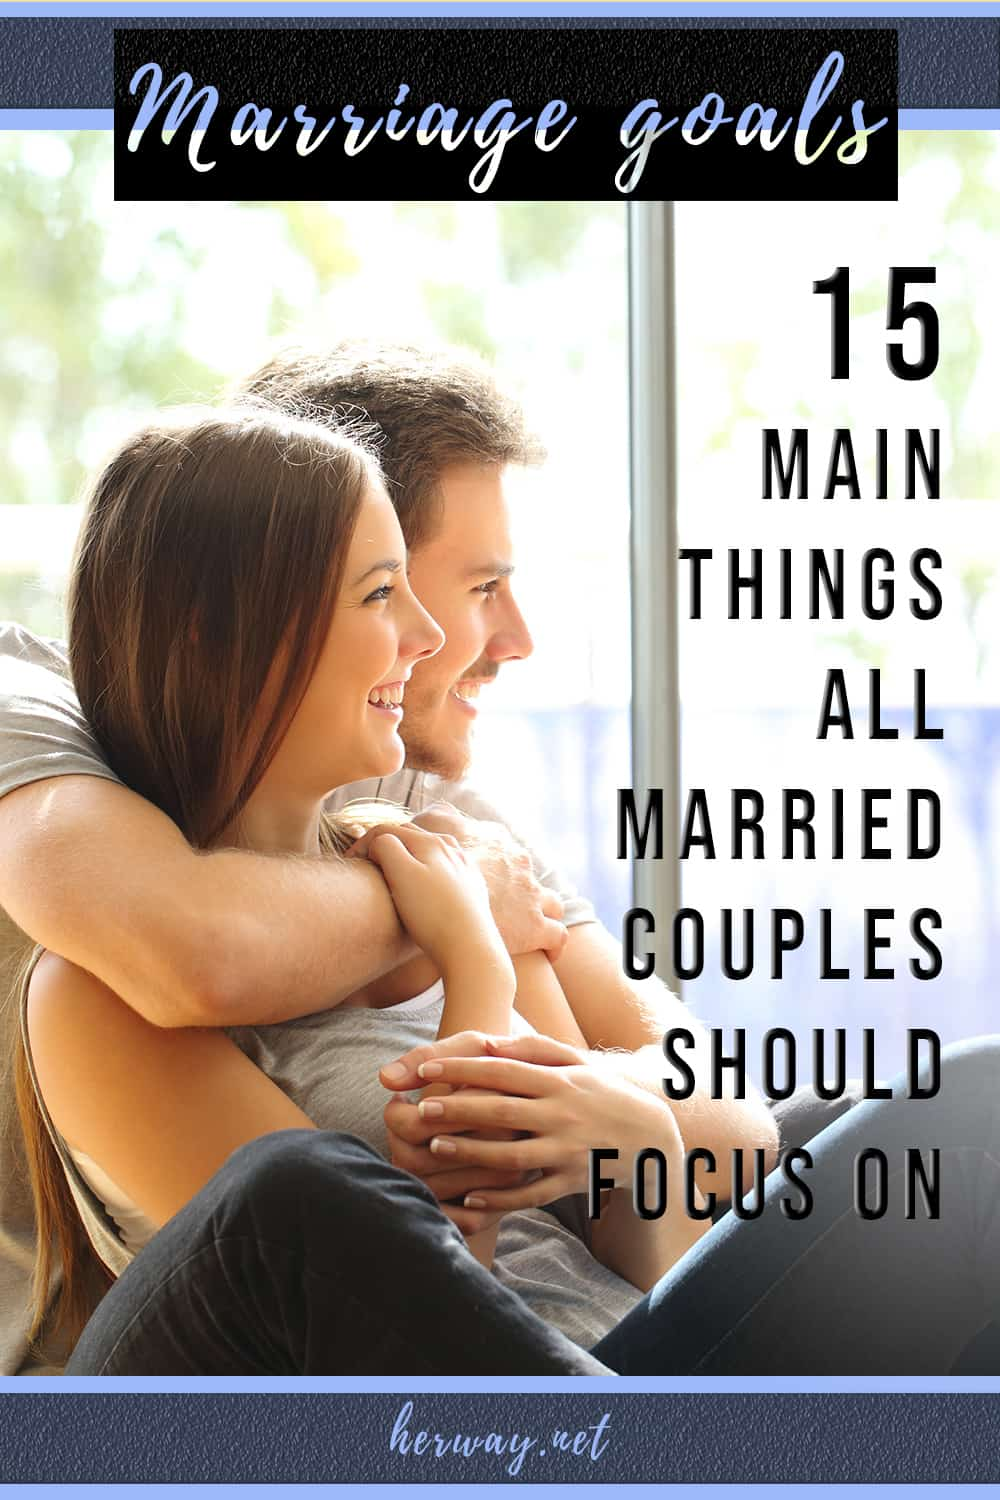 Marriage Goals 15 Main Things All Married Couples Should Focus On